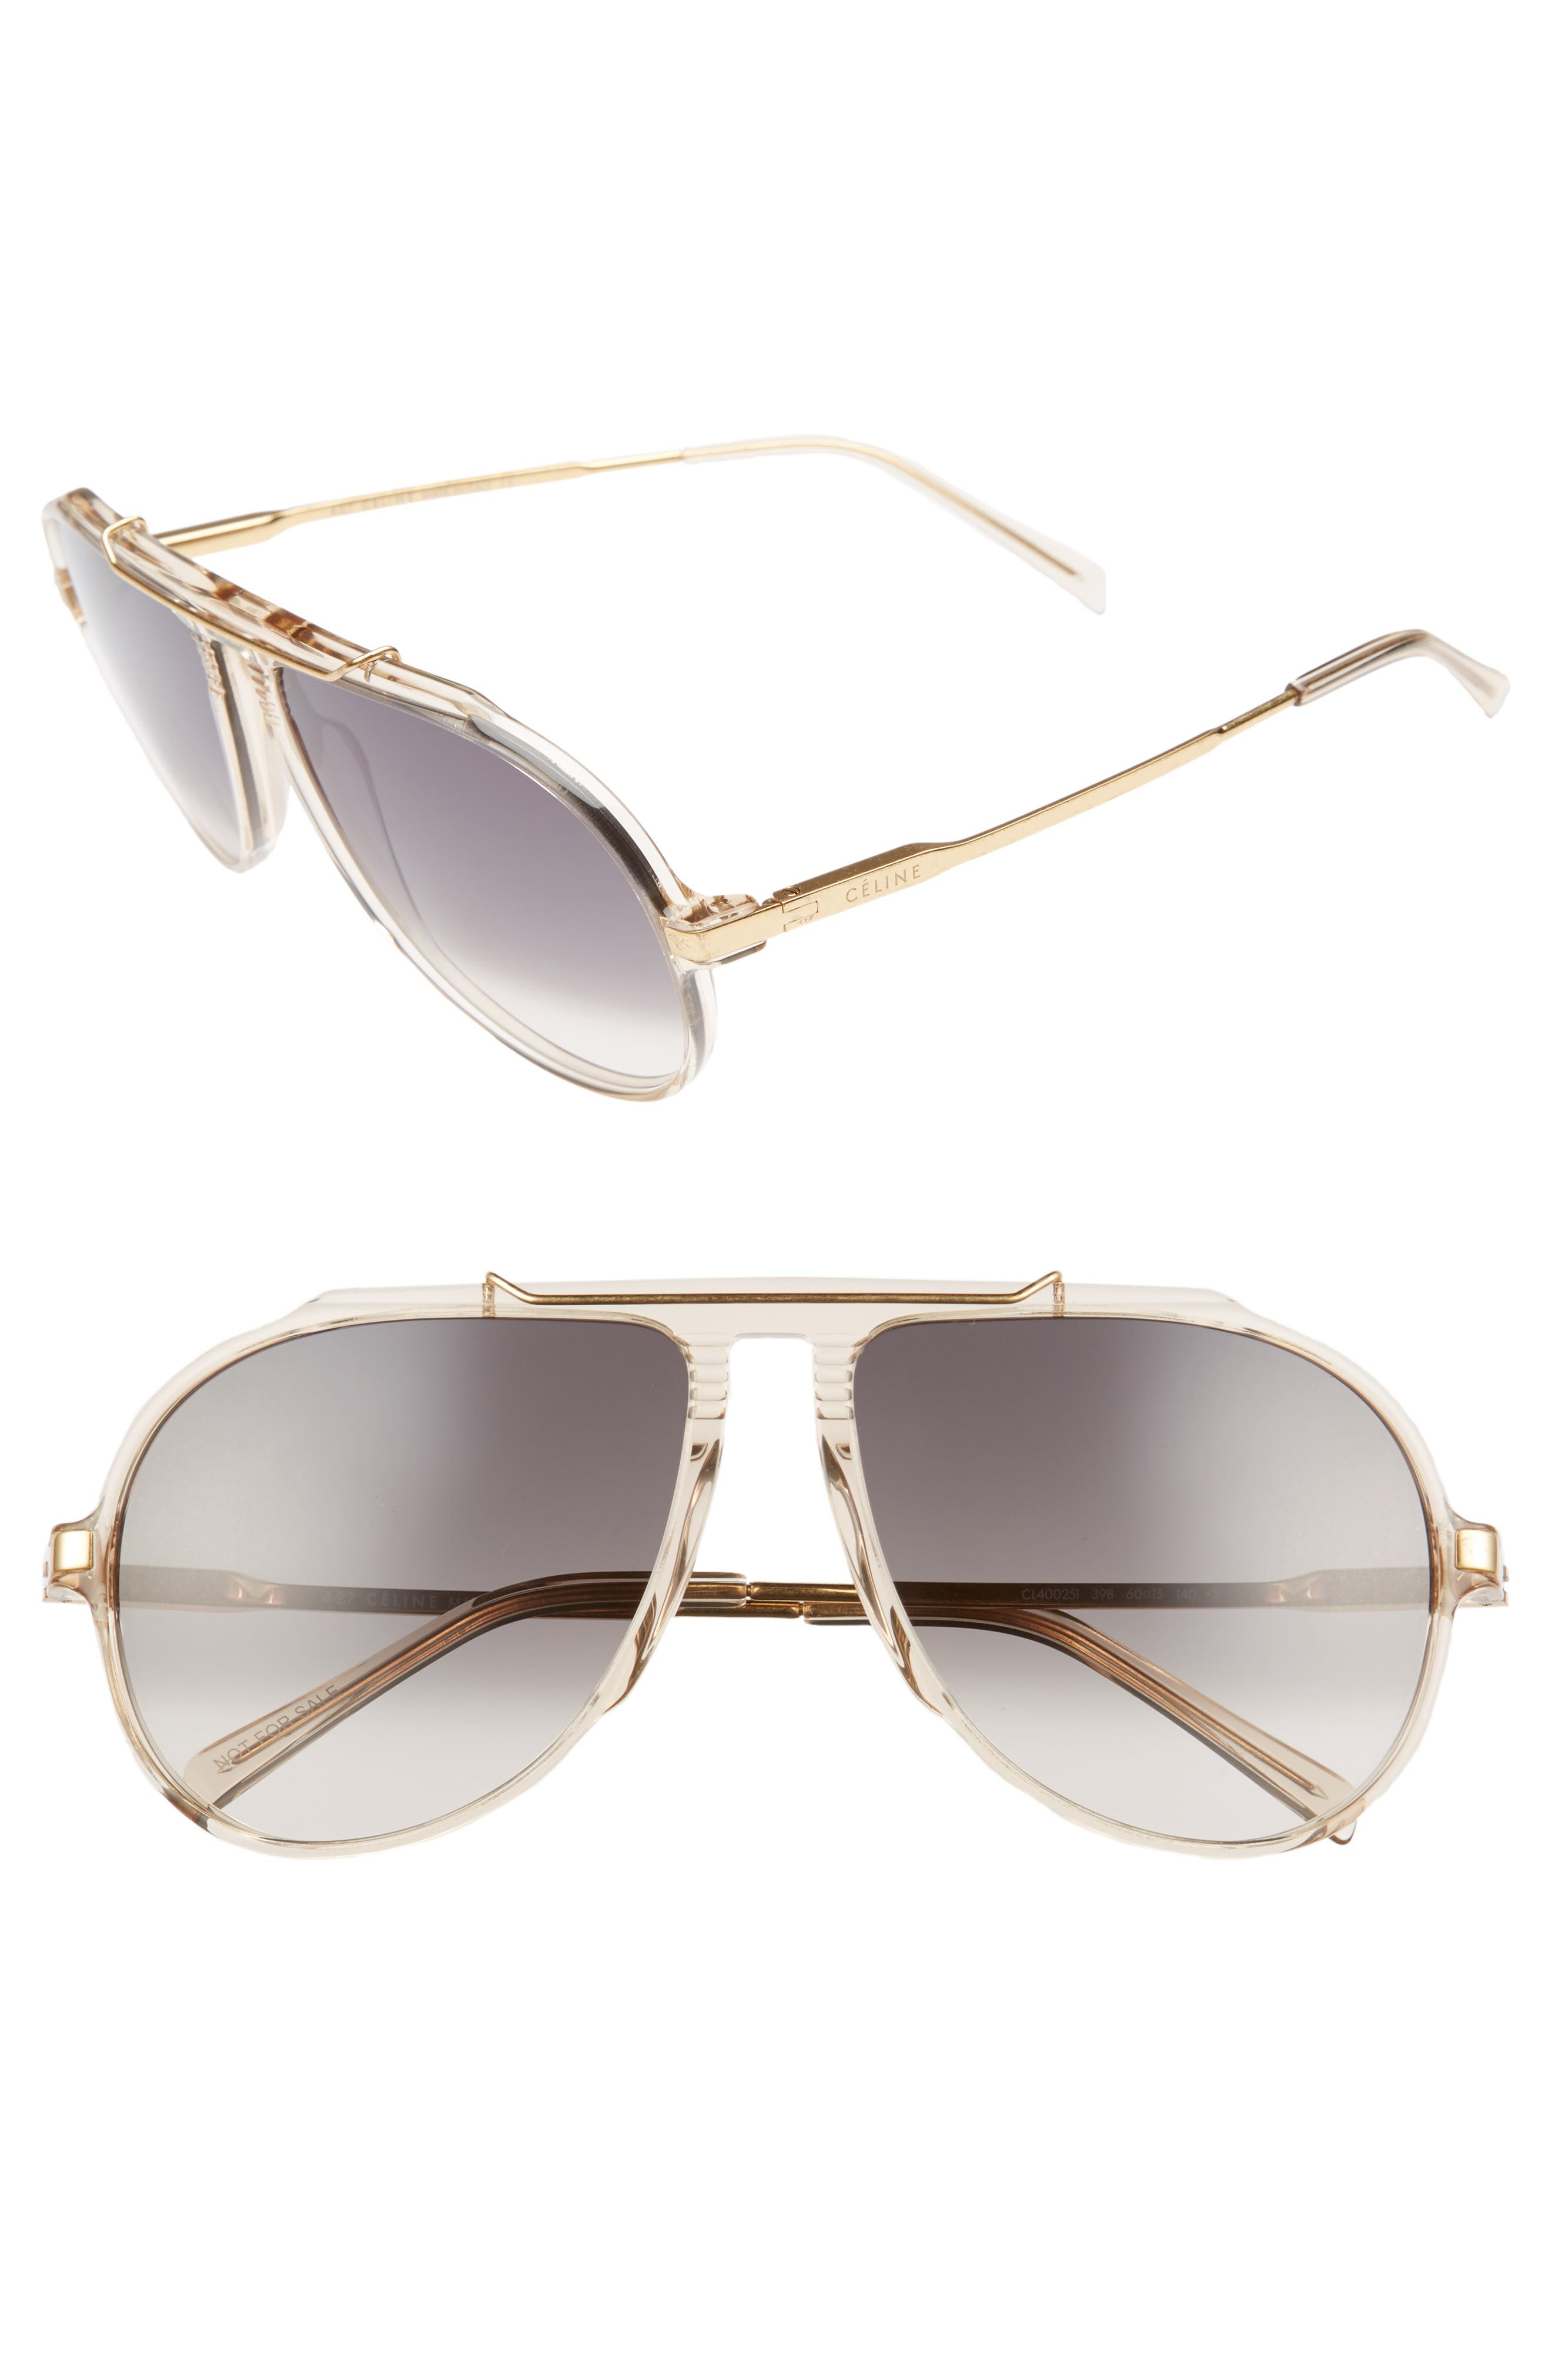 60mm Gradient Aviator Sunglasses,                             Main thumbnail 1, color,                             Champagne/ Gold/ Green